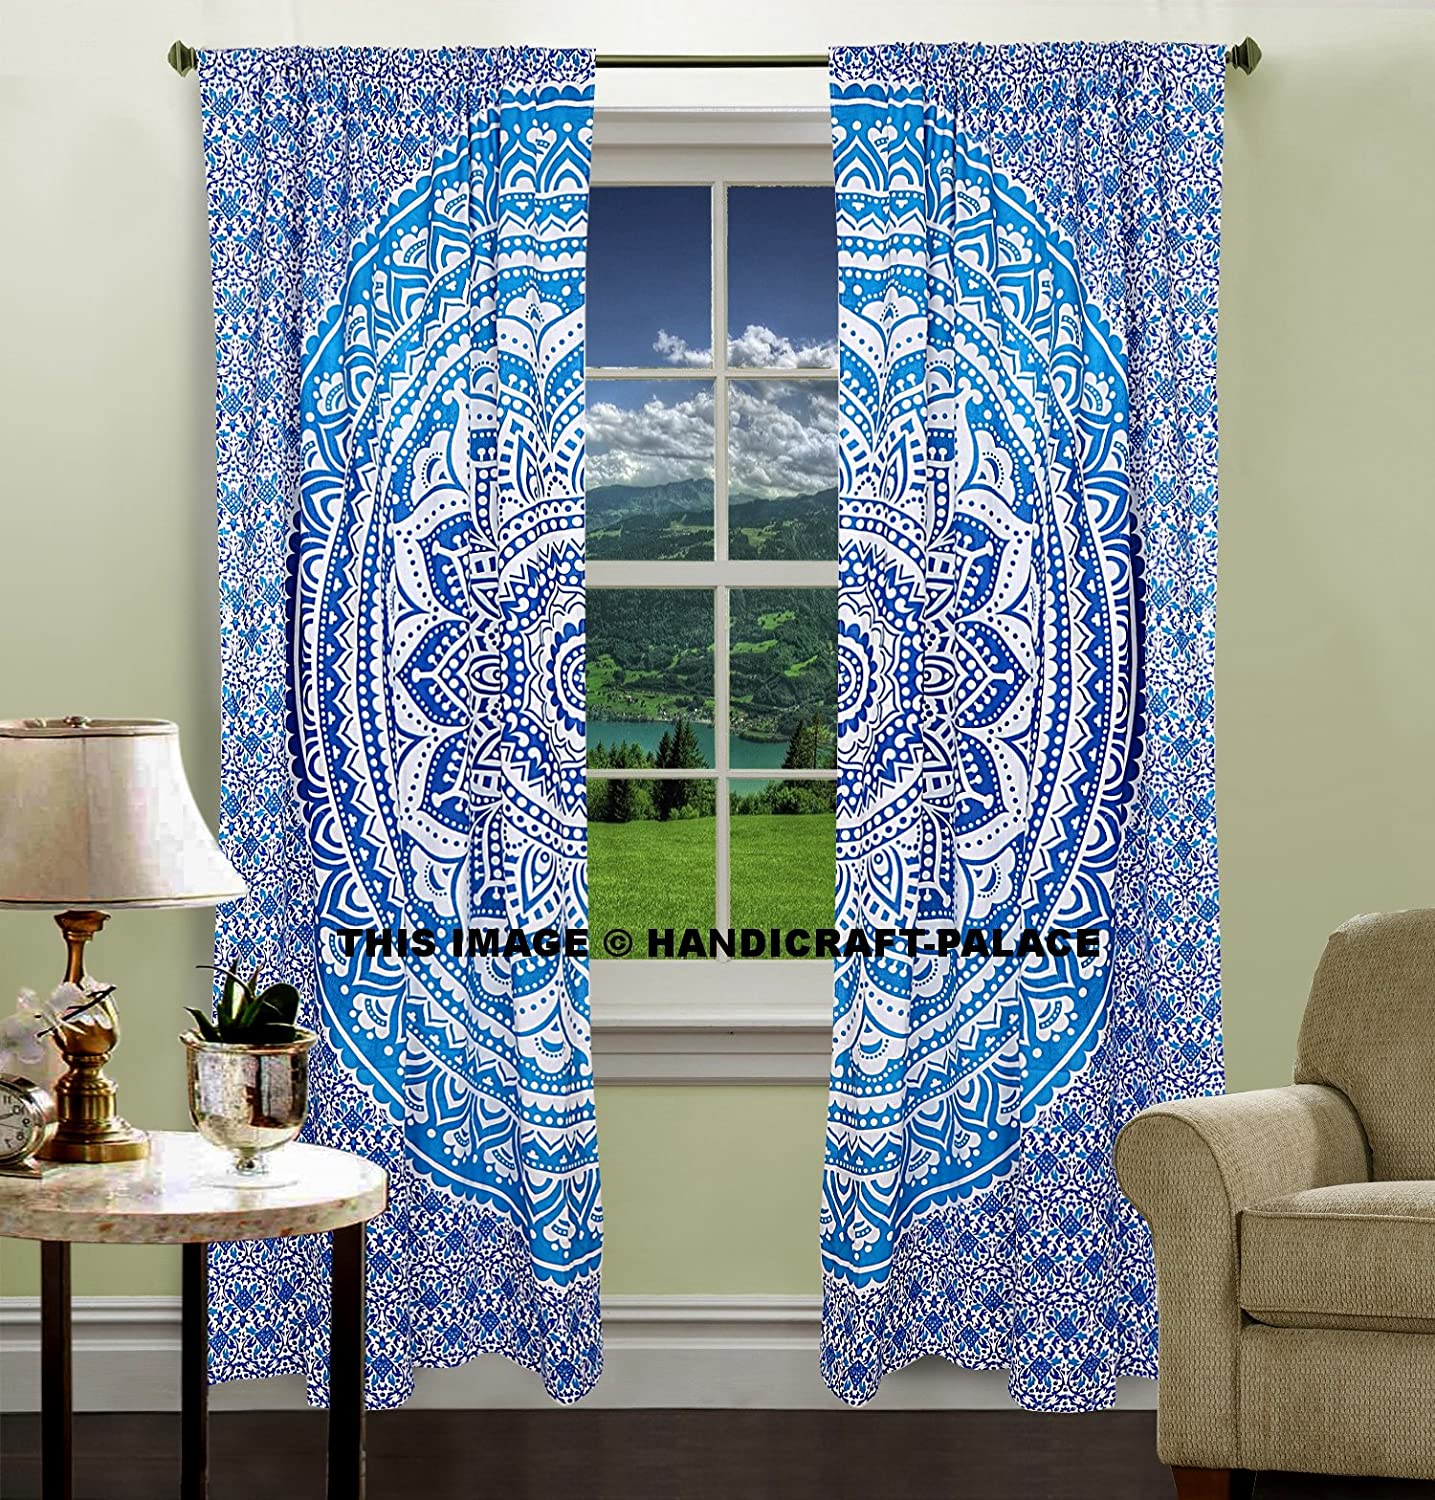 Cobalt blue curtains - Amazon Com Indian Hippie Curtains Bohemian Psychedelic Ombre Mandala Wall Hanging Tapestry Blue Queen Size Large 82x82 Inches Exclusive Sold By